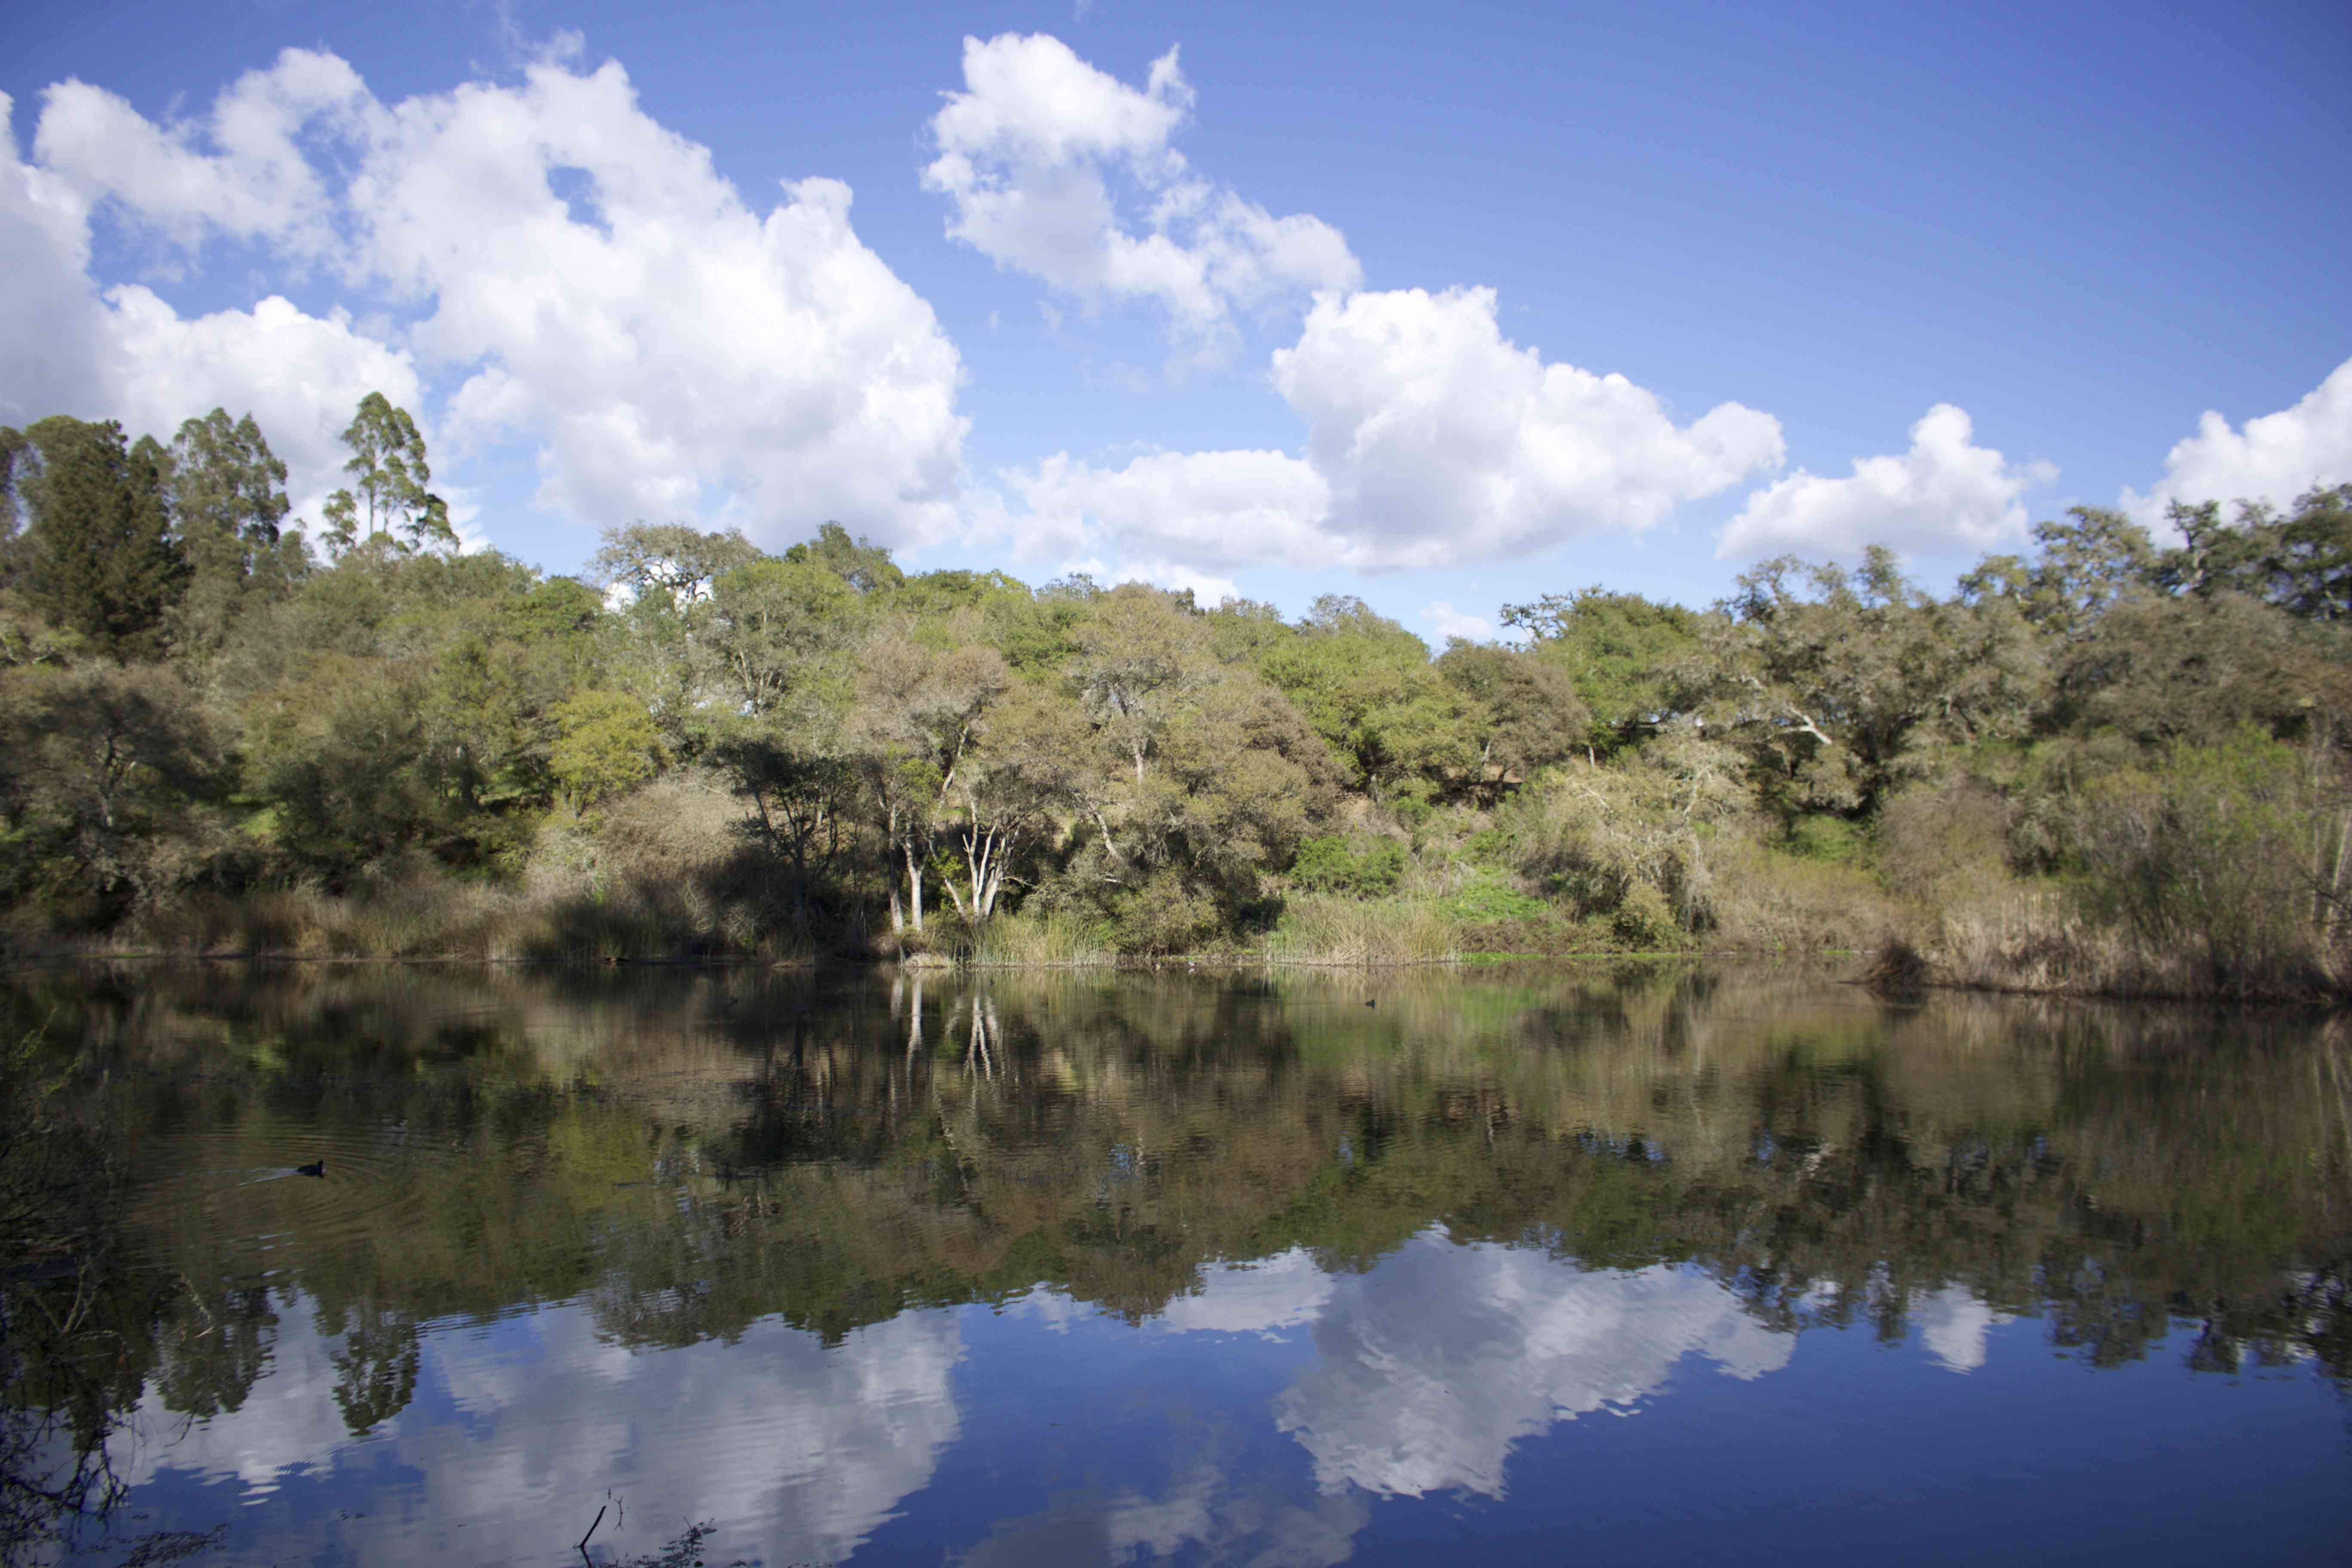 Vegetation-covered bank of Pinto Lake on a blue-sky day